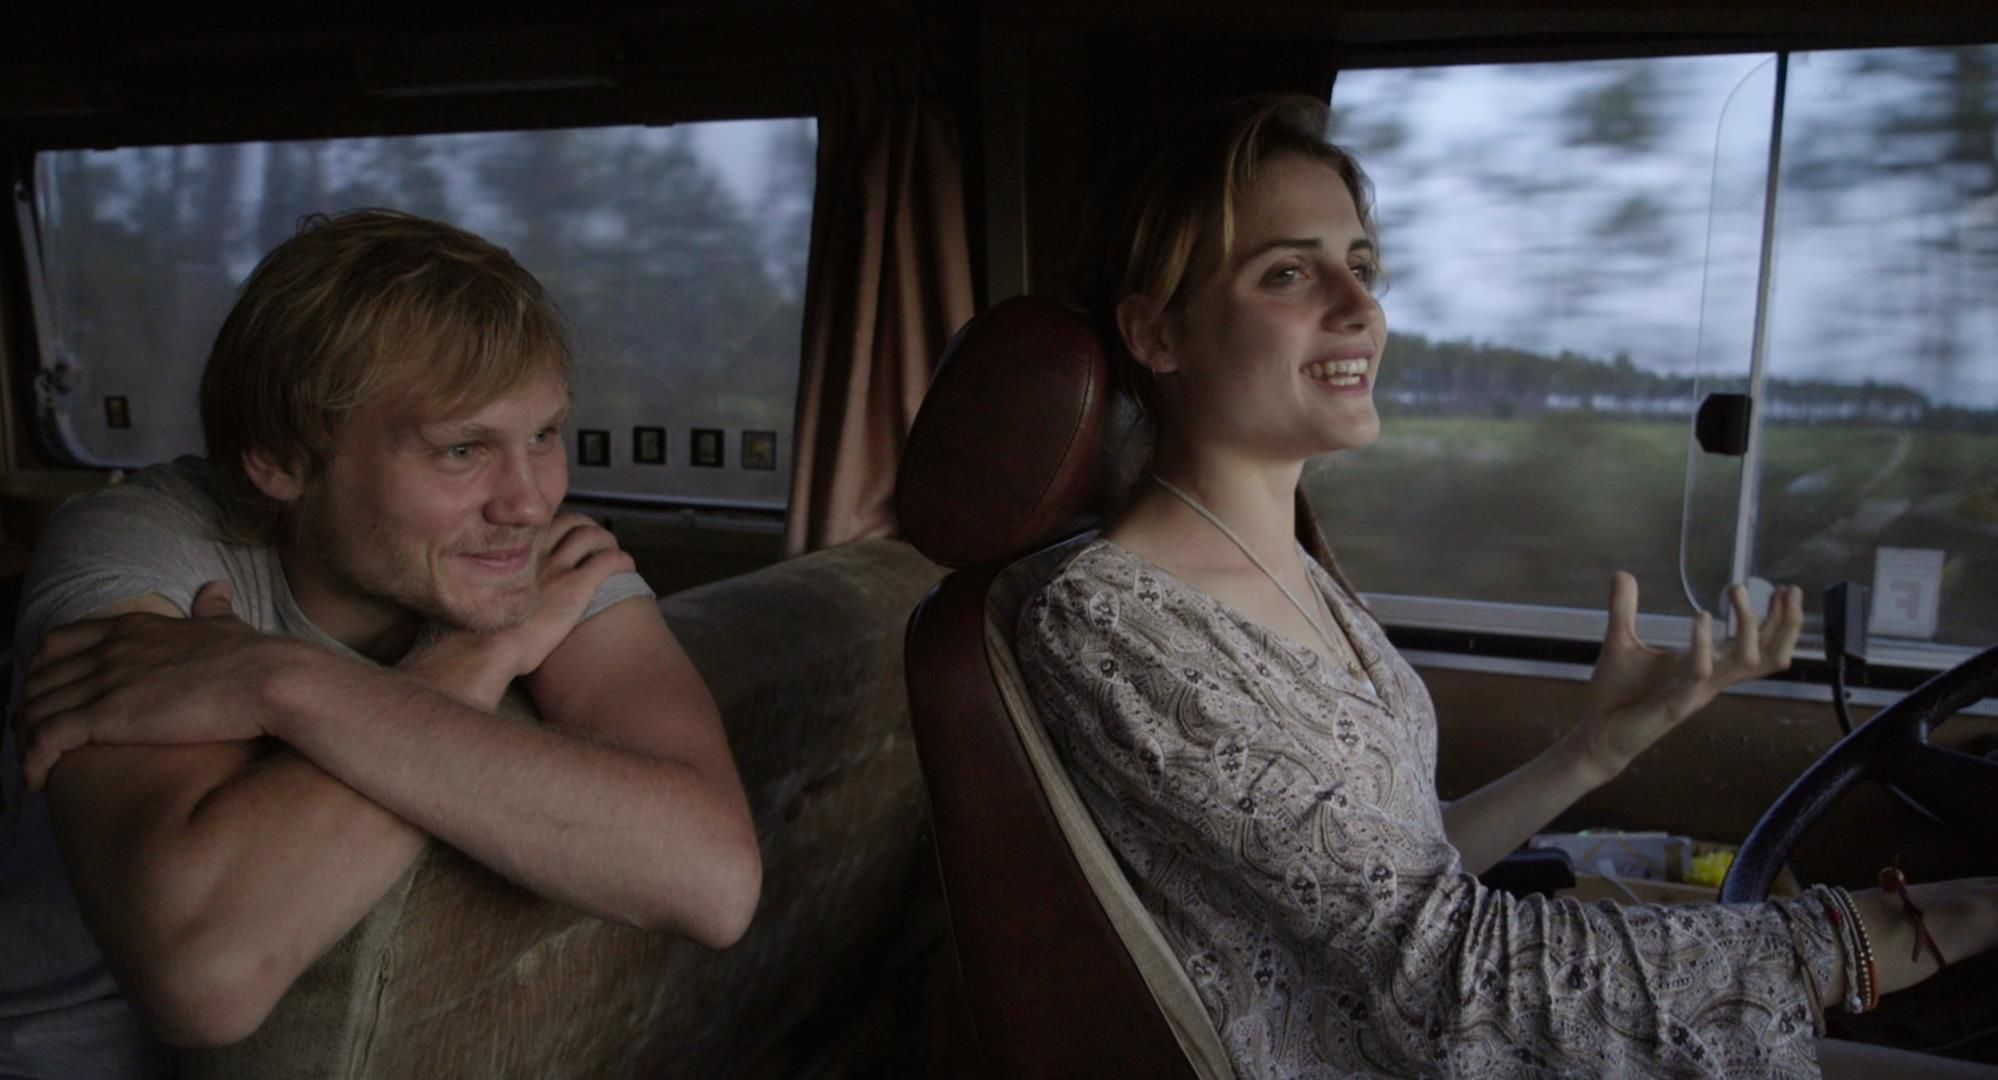 QCFF Review: '303' Is Fun, Fun, Fun on the Autobahn Directed by Corynn Egreczky